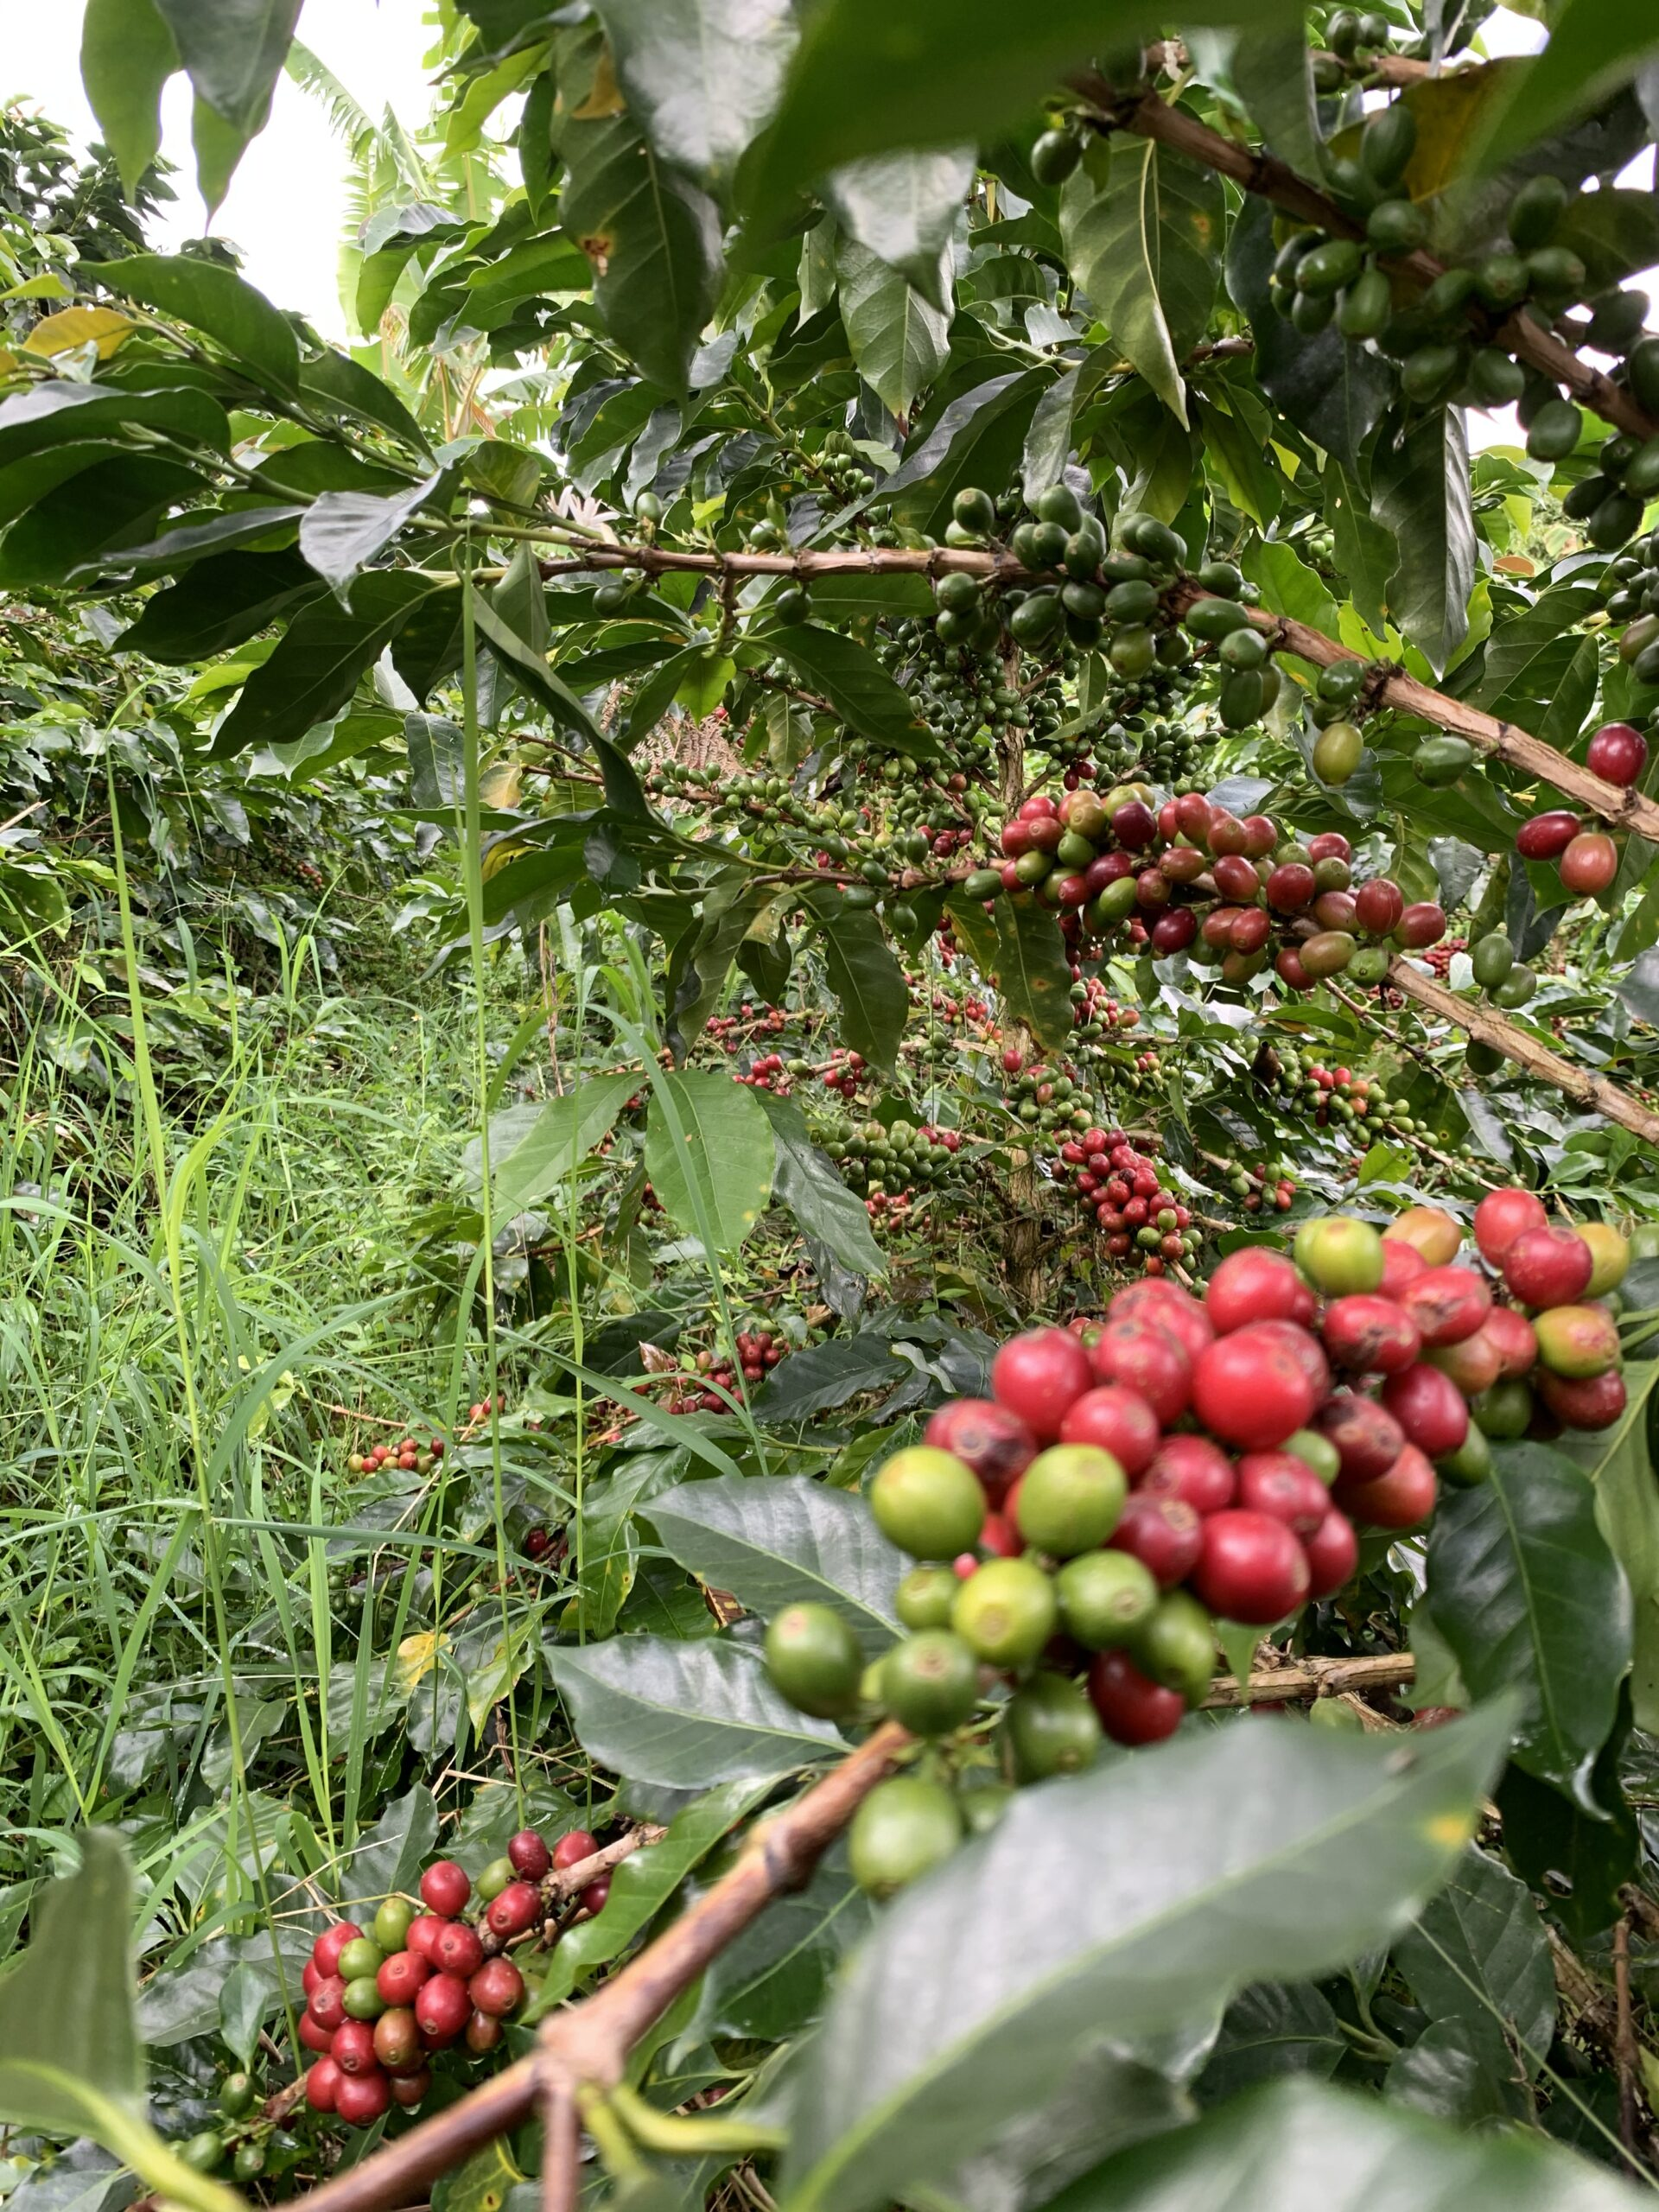 Coffee cherries ready to be picked from Finca Mariposa